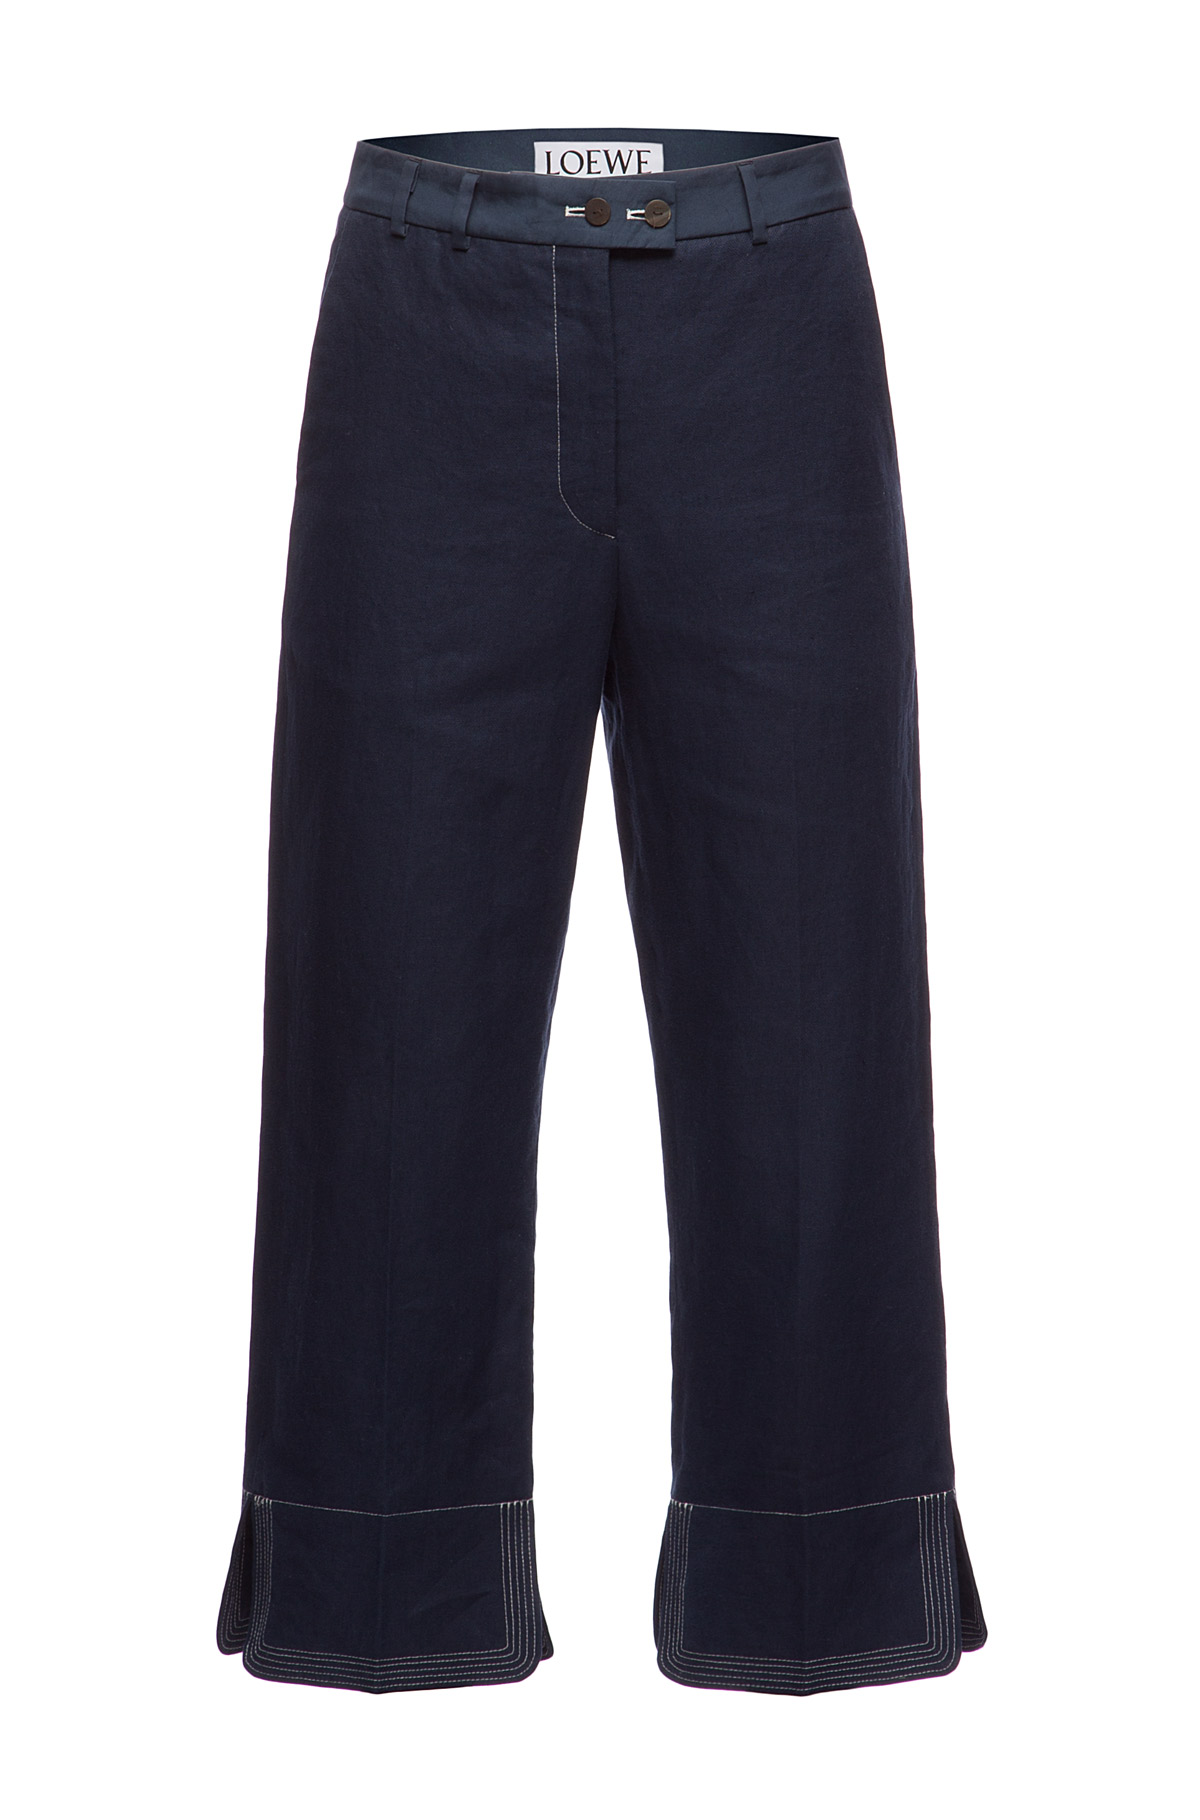 LOEWE Cropped Trousers Navy Blue front